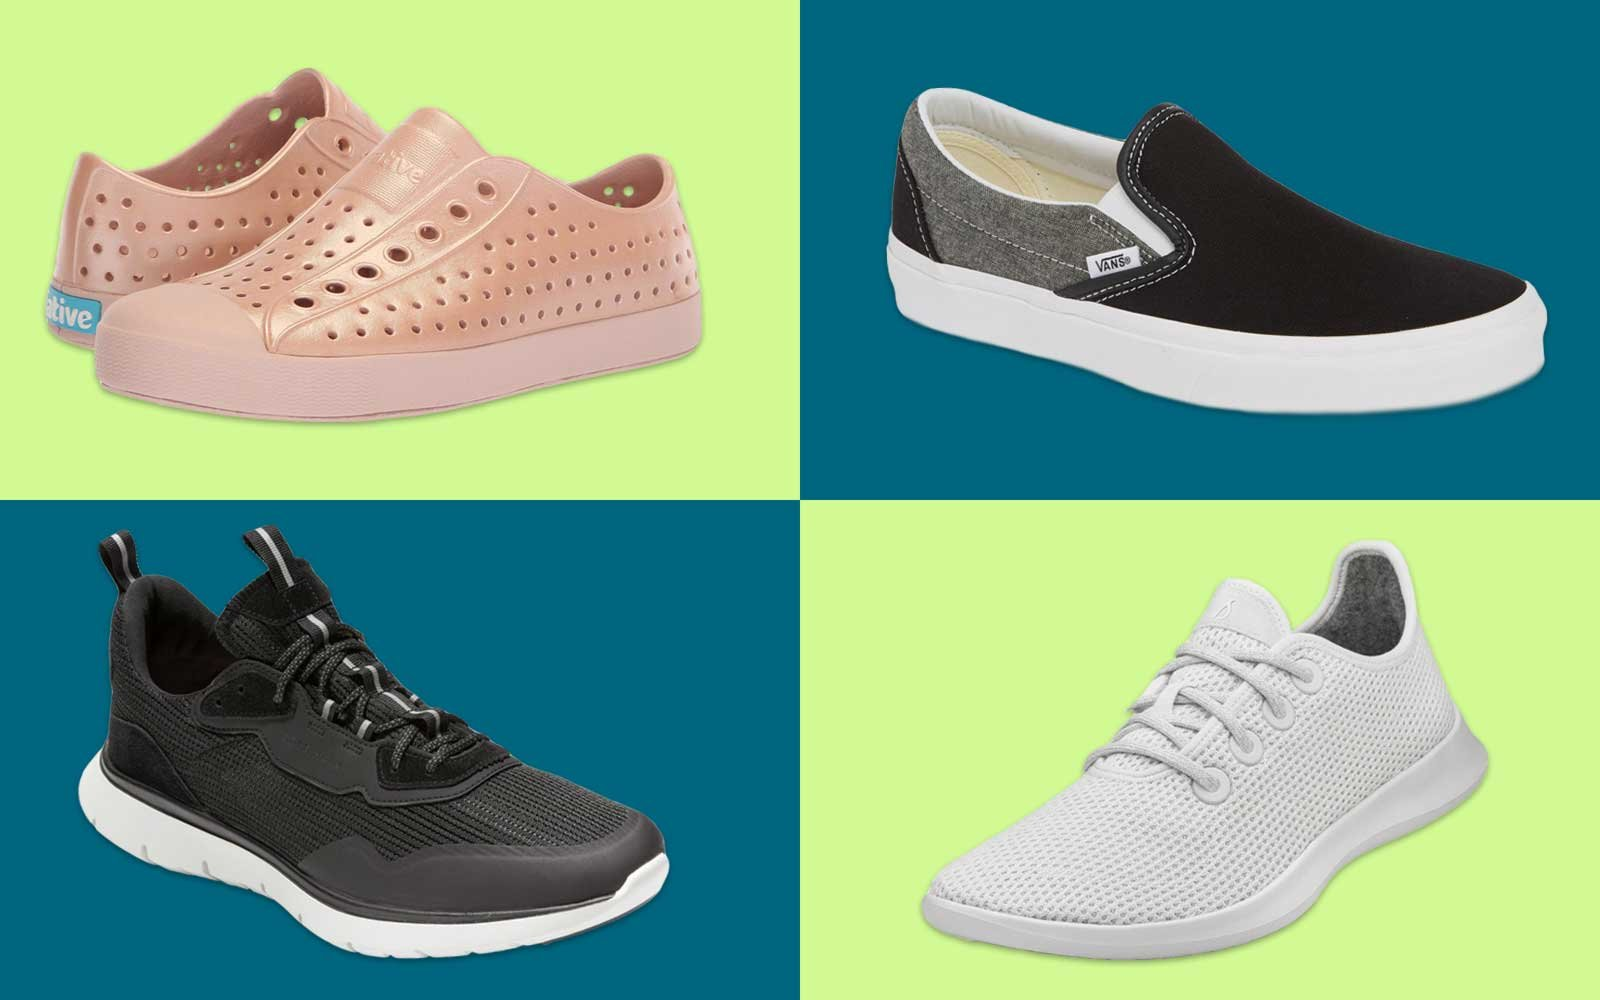 3f87e89a03580 These 11 Shoe Brands Make the Most Comfortable Sneakers | Travel + ...